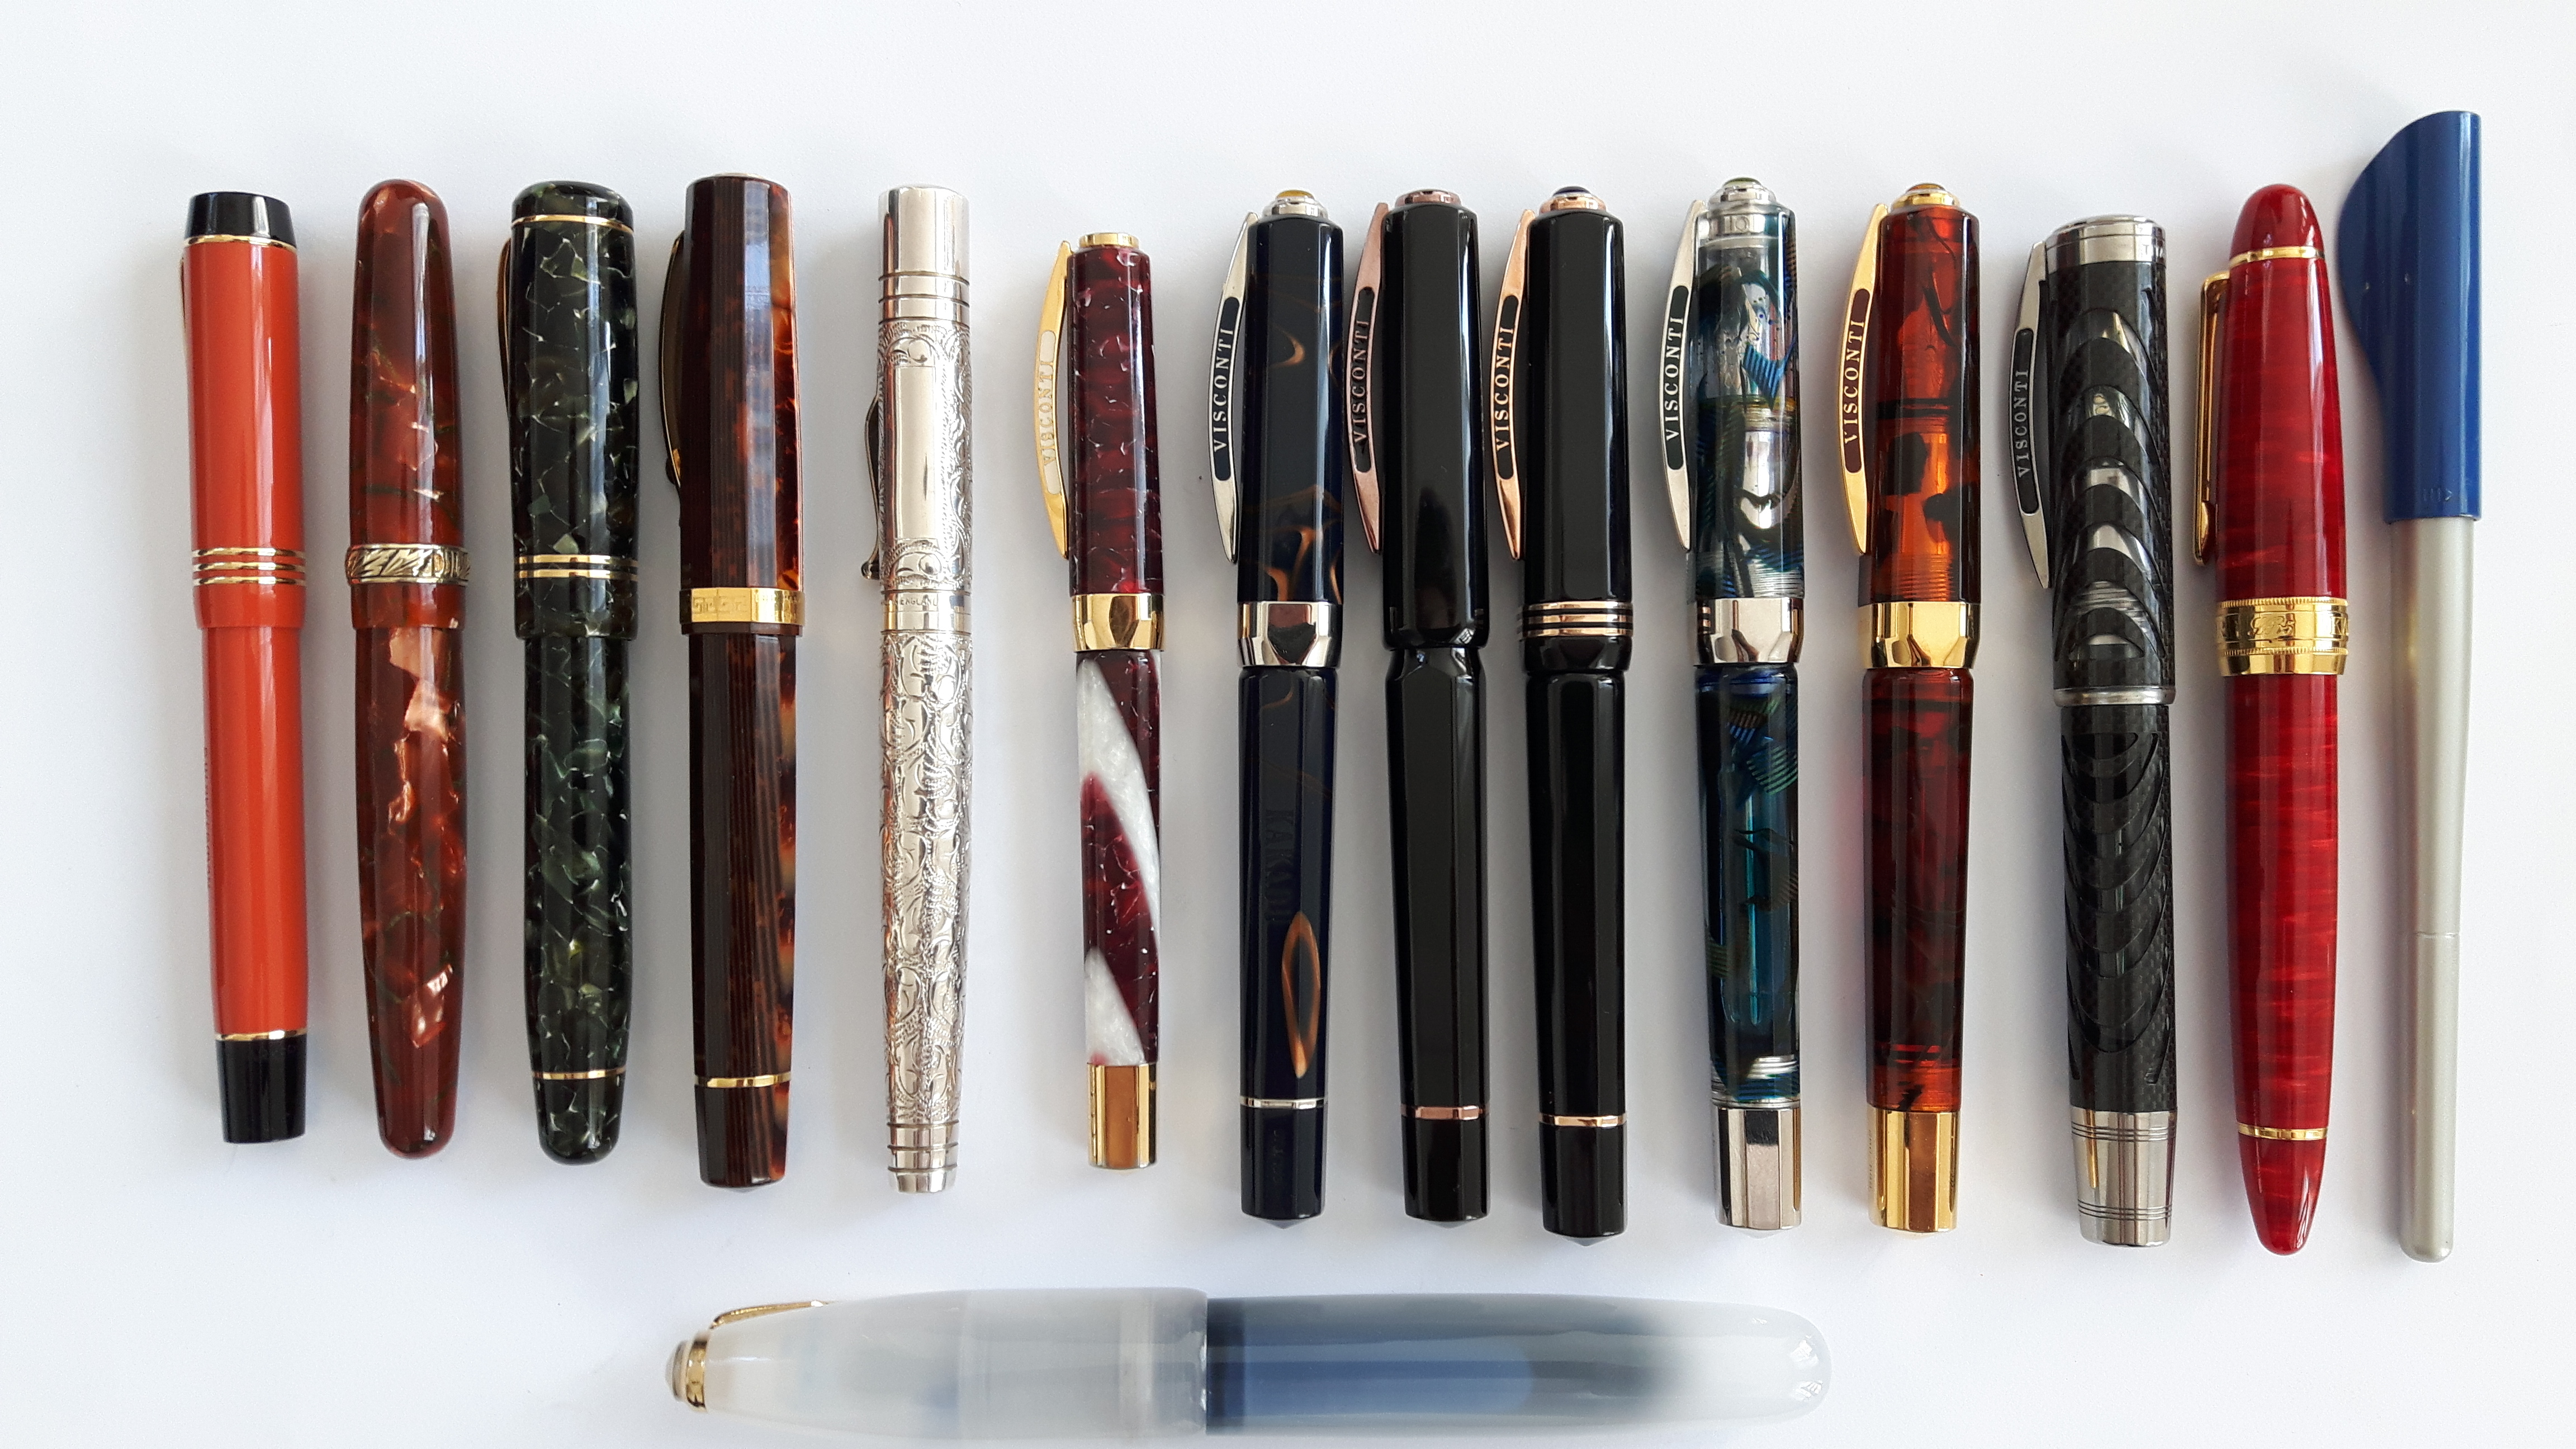 How to Start a Fountain Pen Collection